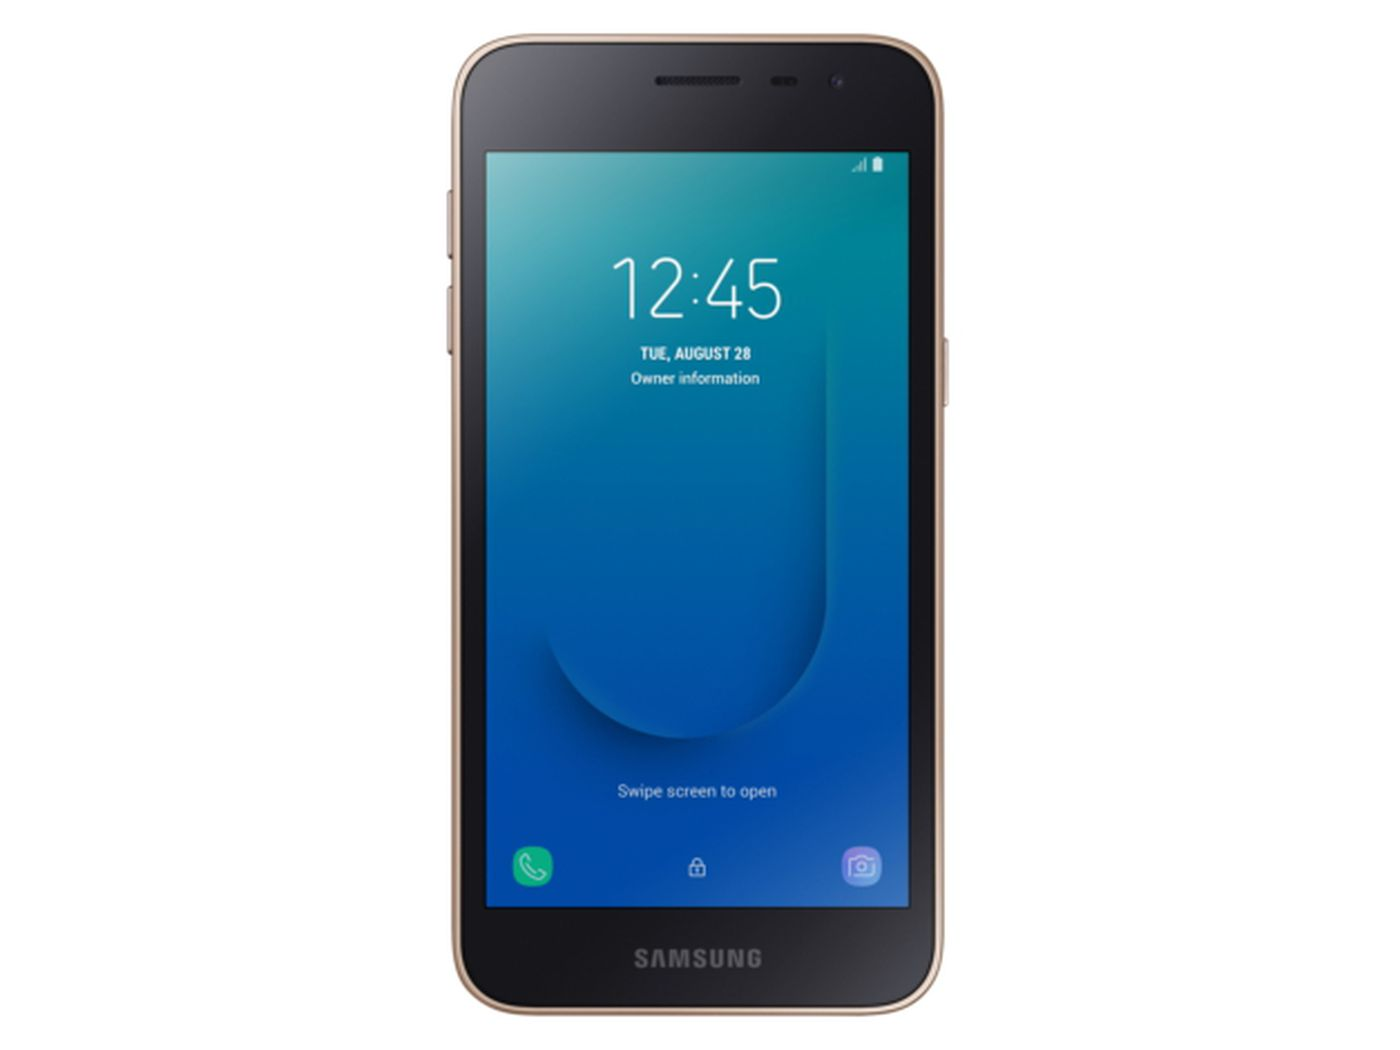 Samsung Galaxy J2 Core Announced For India Specs Price Release Date The Verge